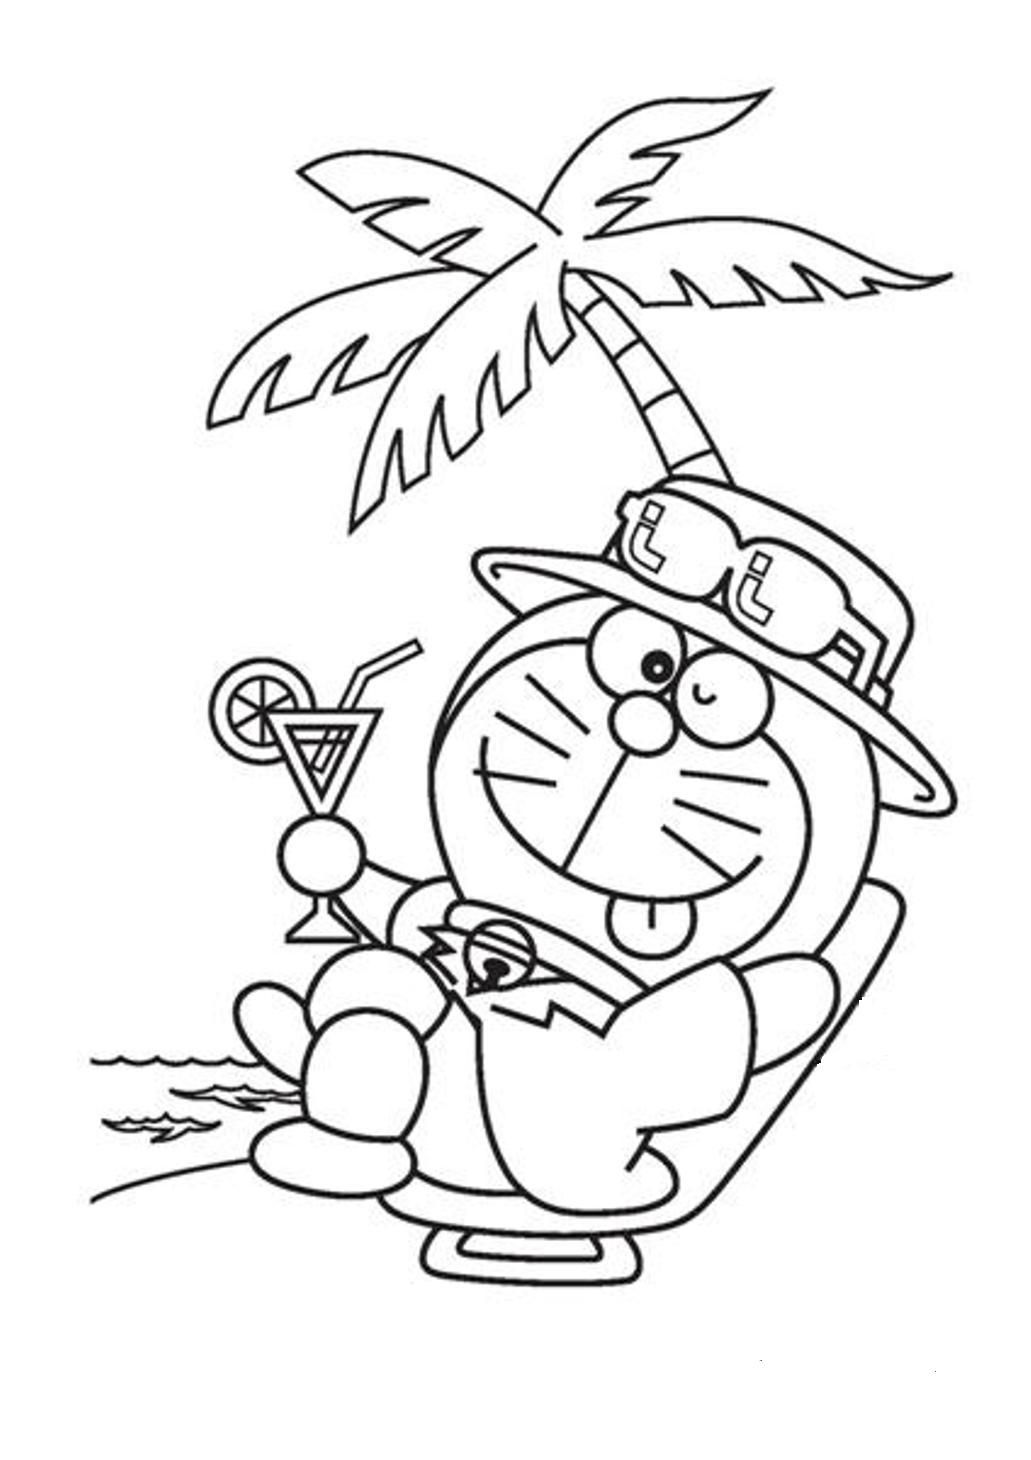 Relaxing Doraemon Cartoon Coloring Pages Coloring Page Love